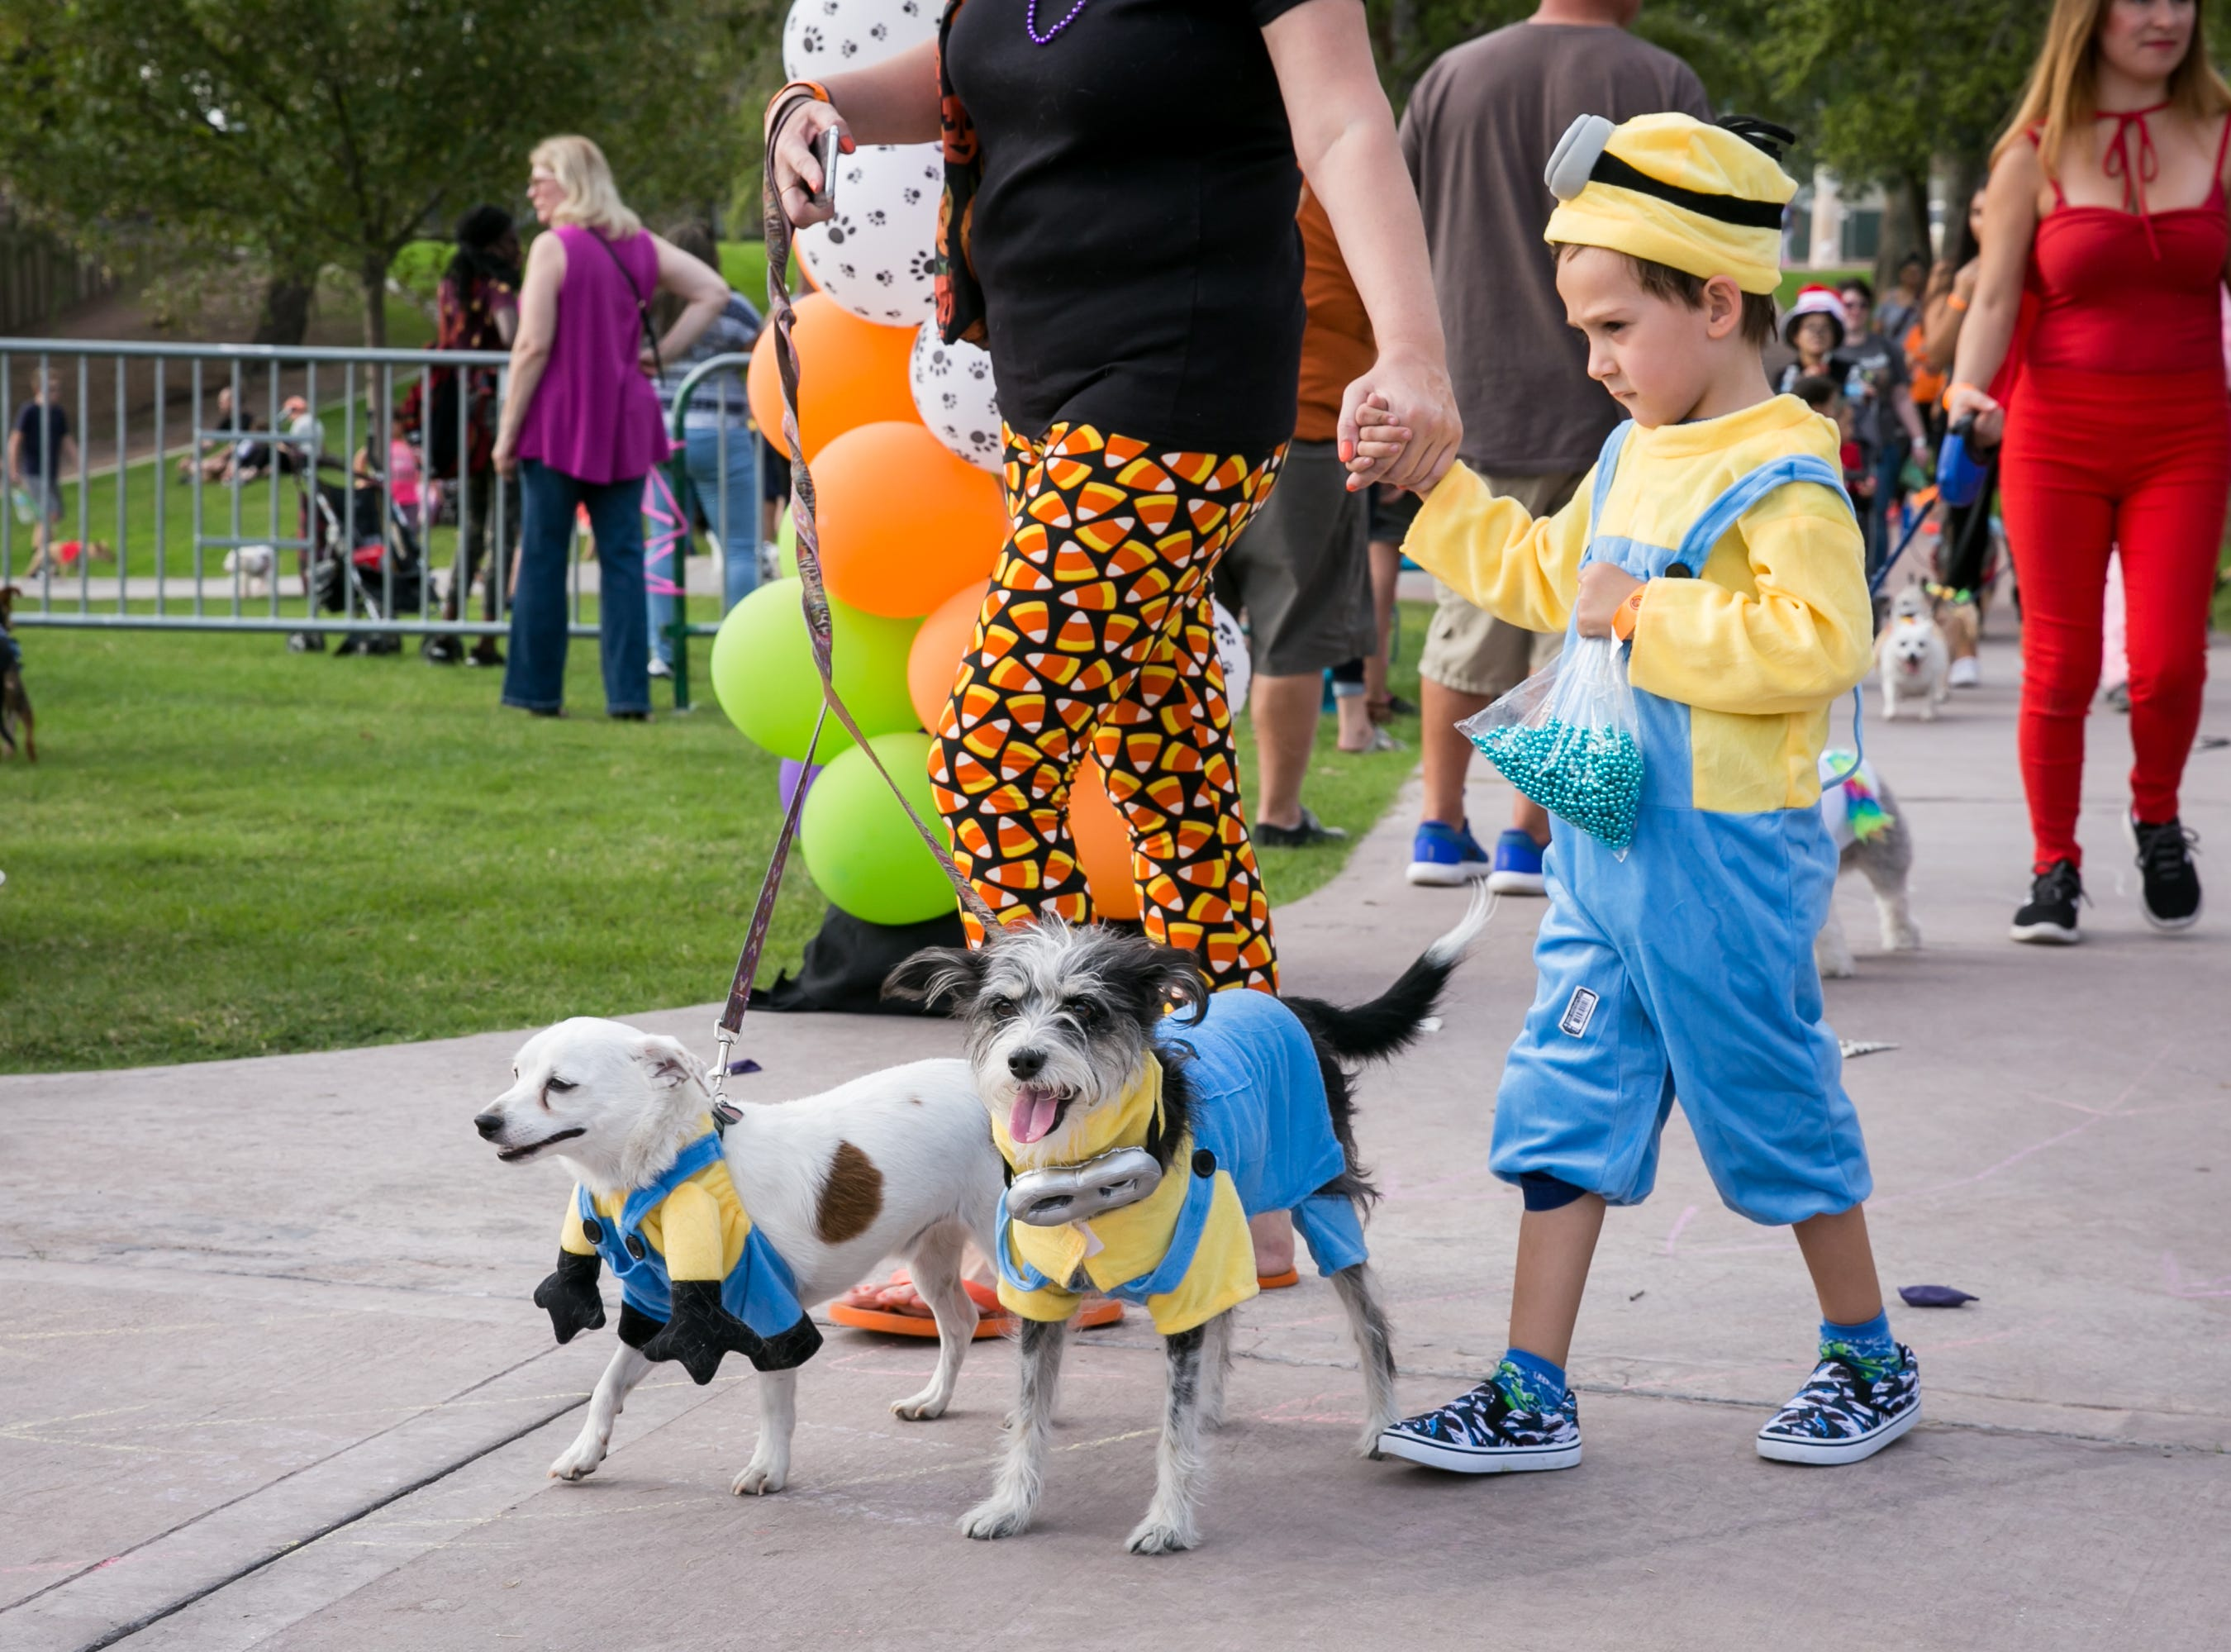 These minions got into some adorable shenanigans during Howl-o-Ween at Hance Park on Sunday, October 28, 2018.